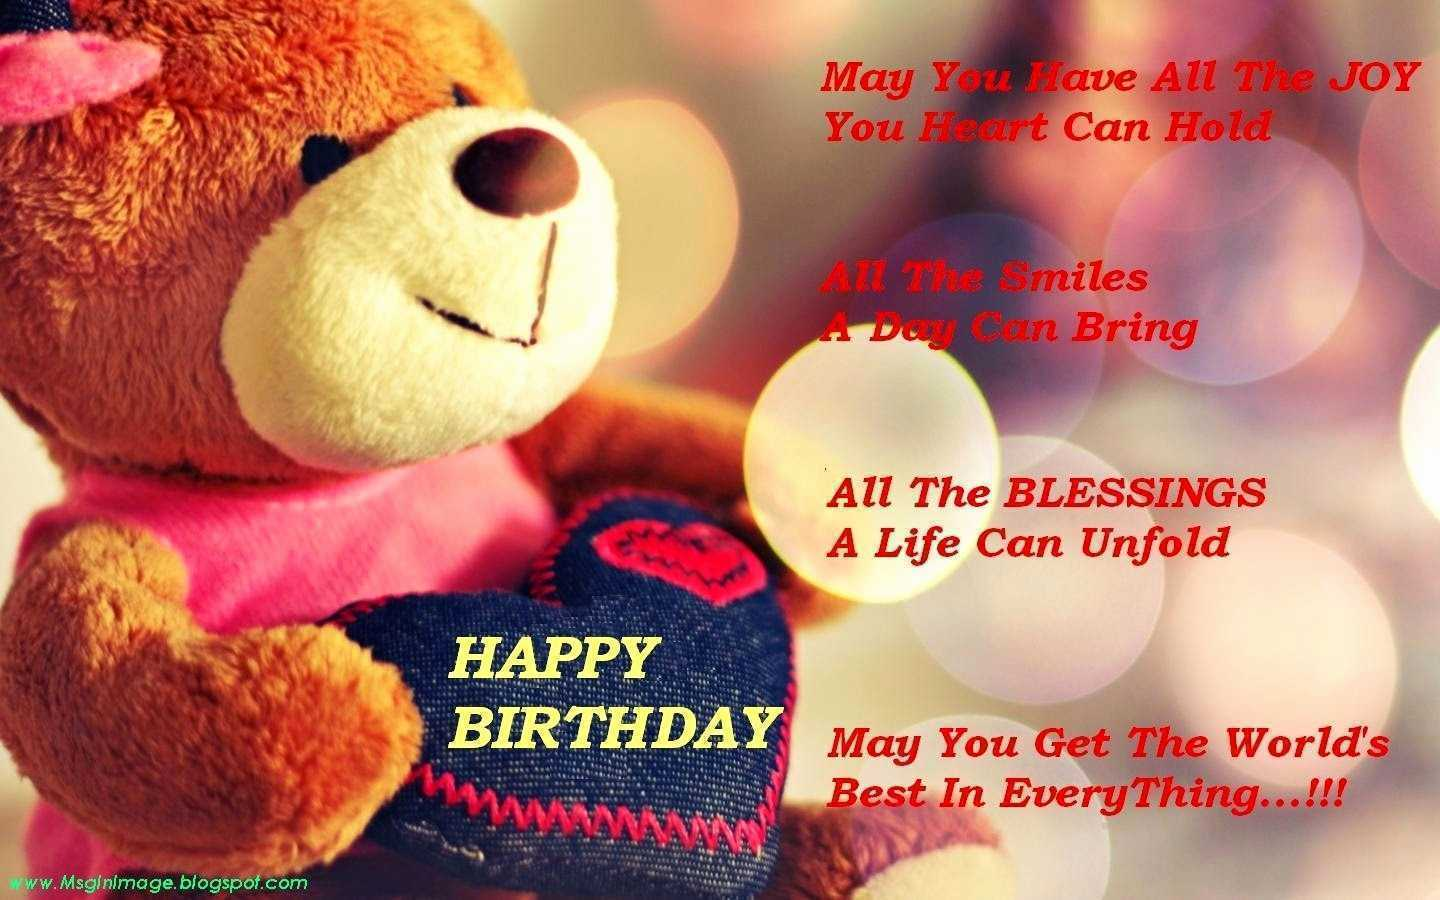 birthday message for her tagalog ; happy-birthday-quotes-for-girlfriend-beautiful-quotes-birthday-girlfriend-elegant-tagalog-birthday-of-happy-birthday-quotes-for-girlfriend